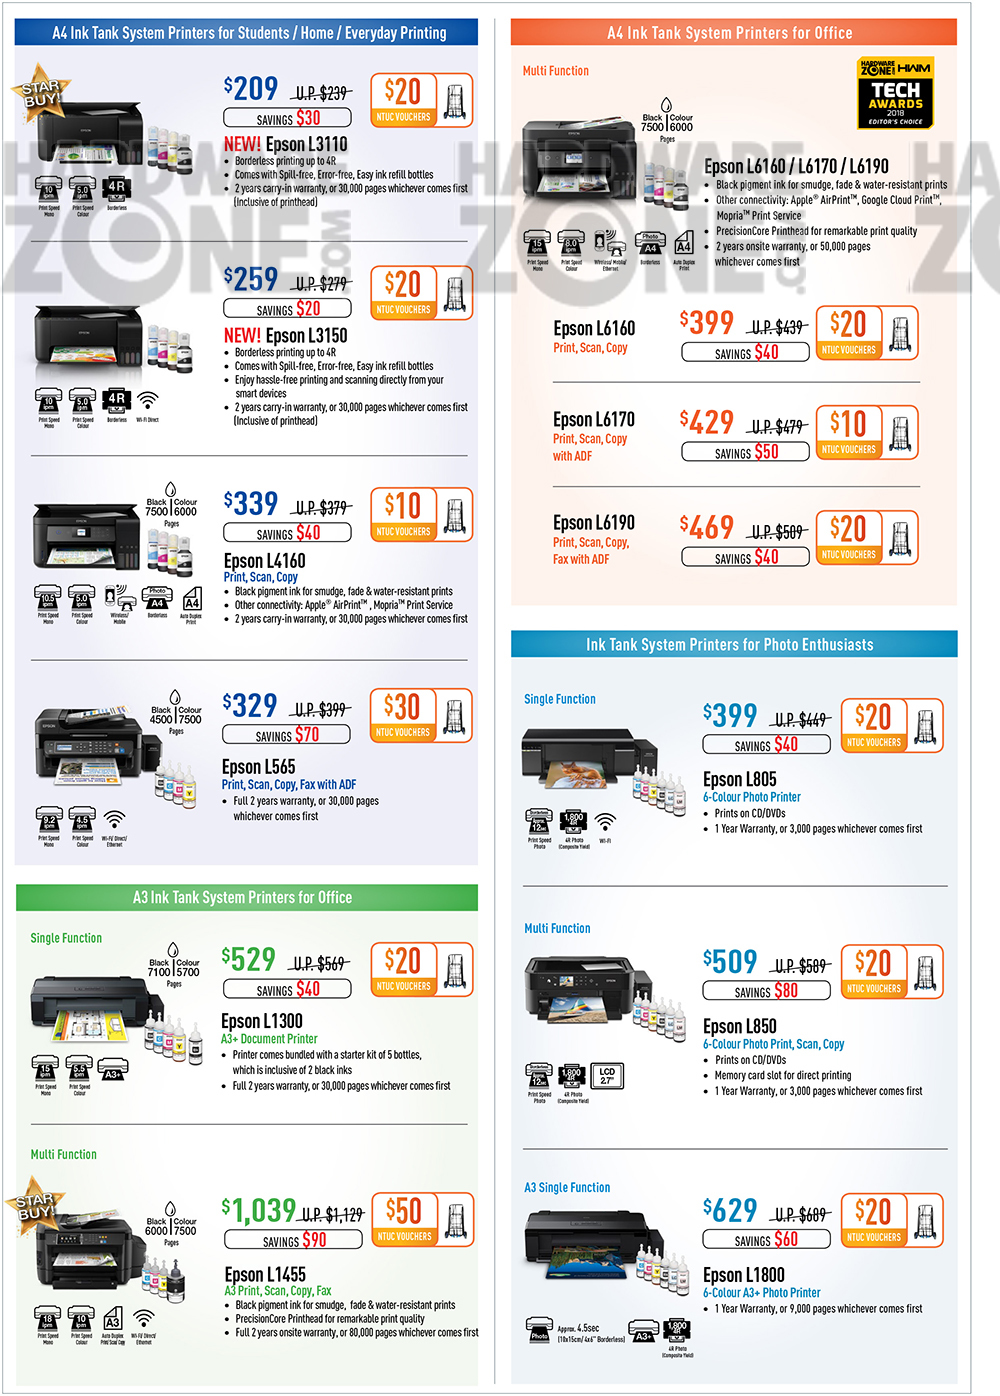 Epson Printers - Pg 2 Brochures from The Tech Show 2018 Singapore on